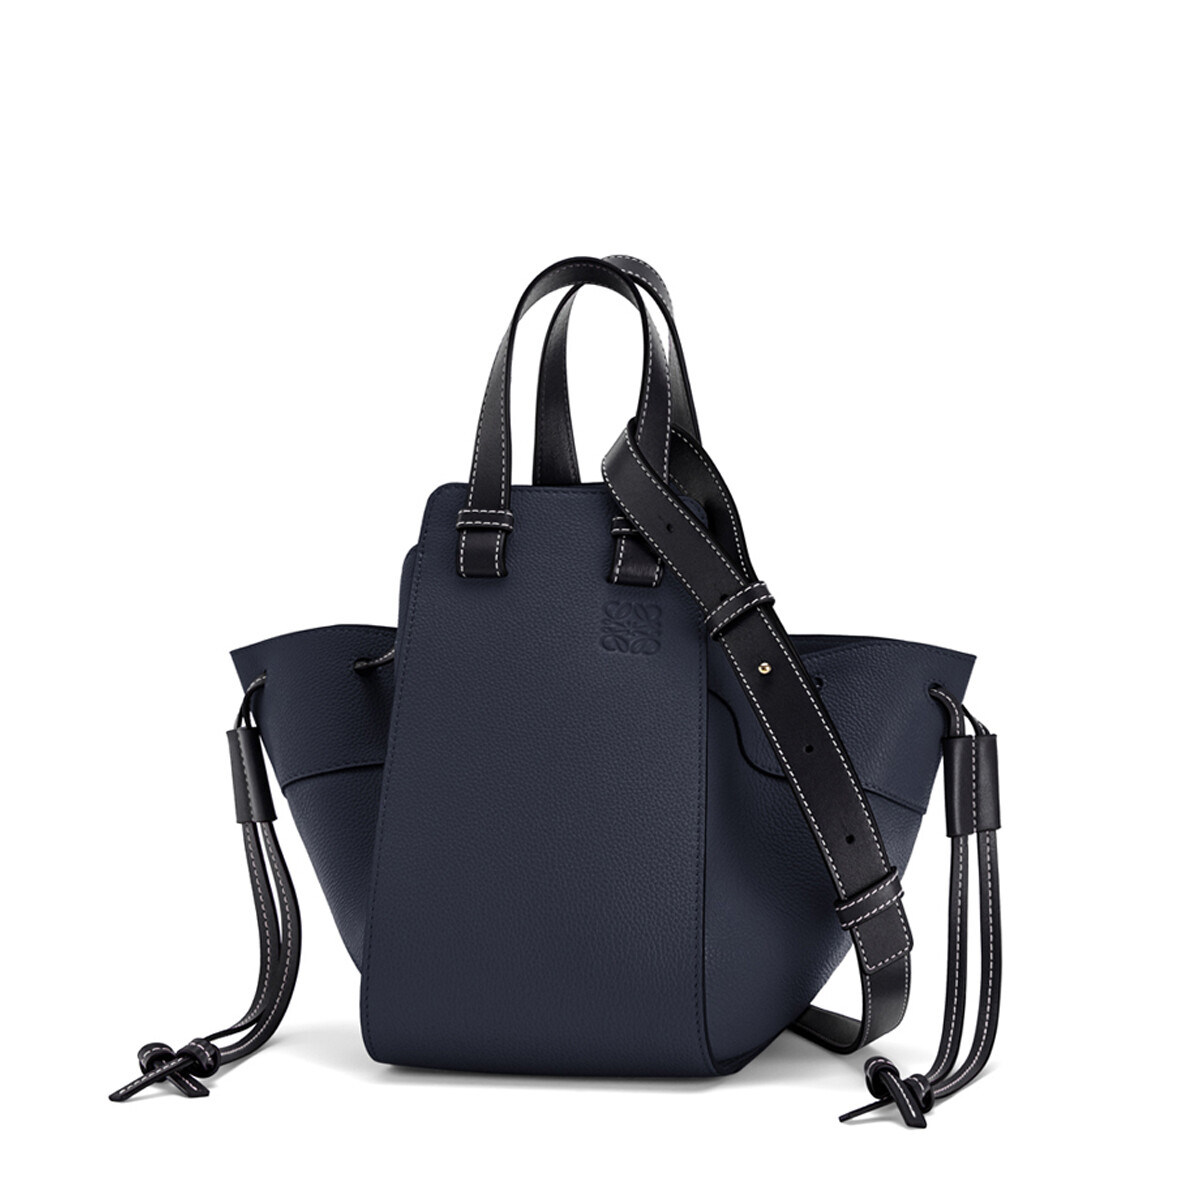 LOEWE Hammock Drawstring Small Bag Midnight Blue/Black front